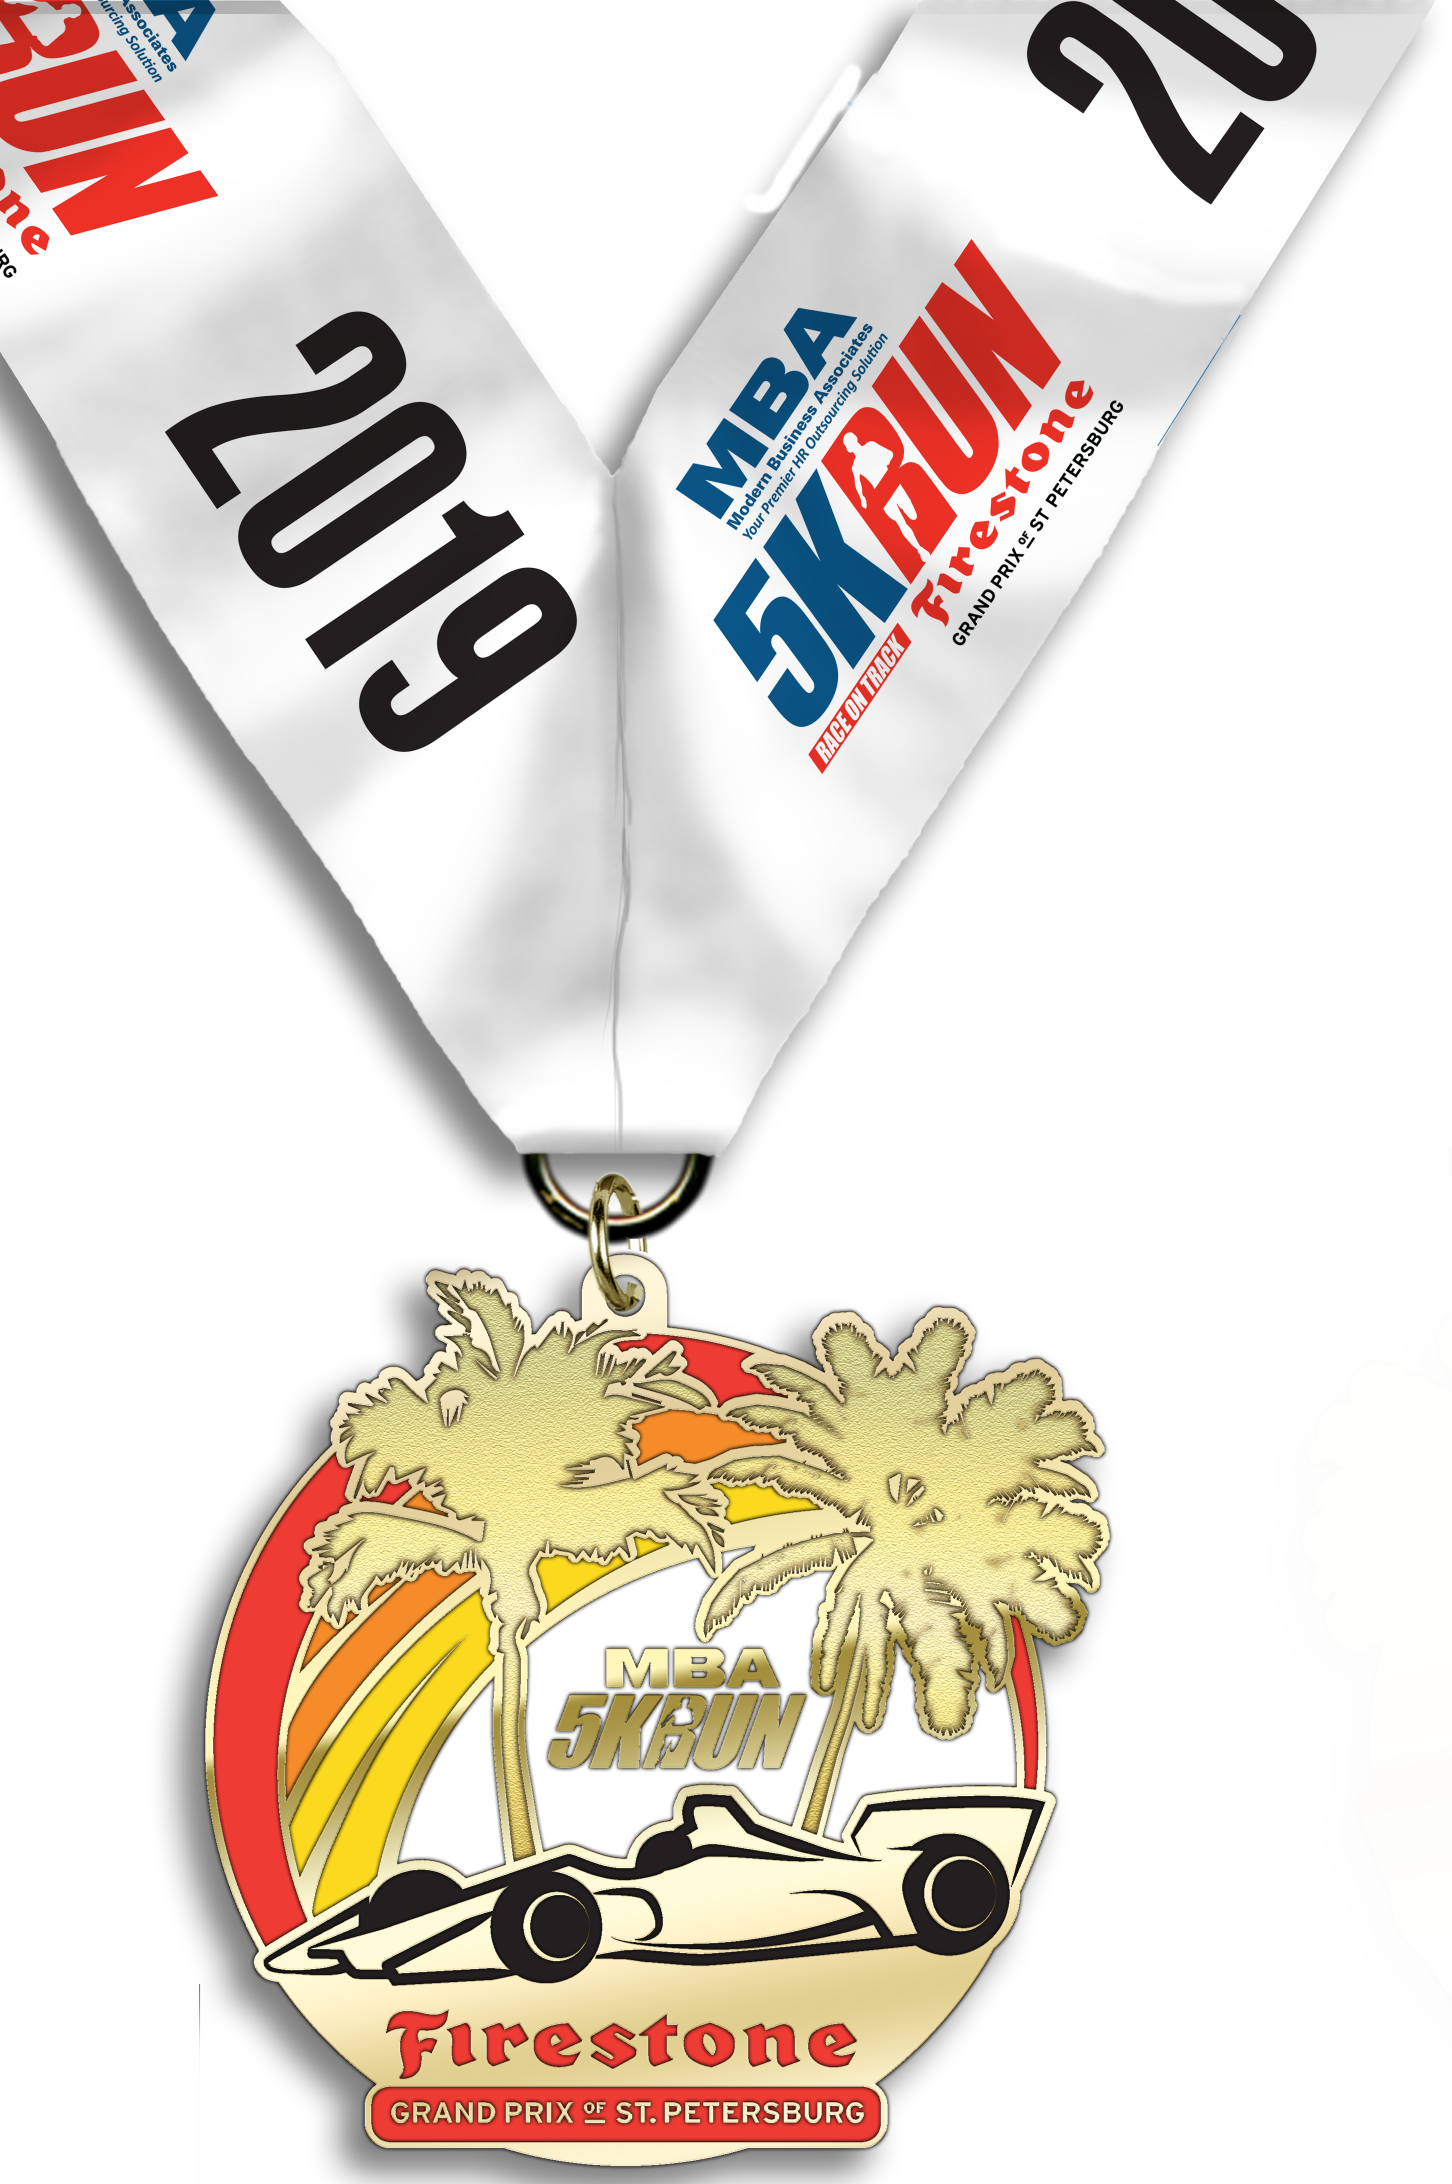 MBA 5K Run on the Firestone Grand Prix of St. Petersburg track finisher's medal